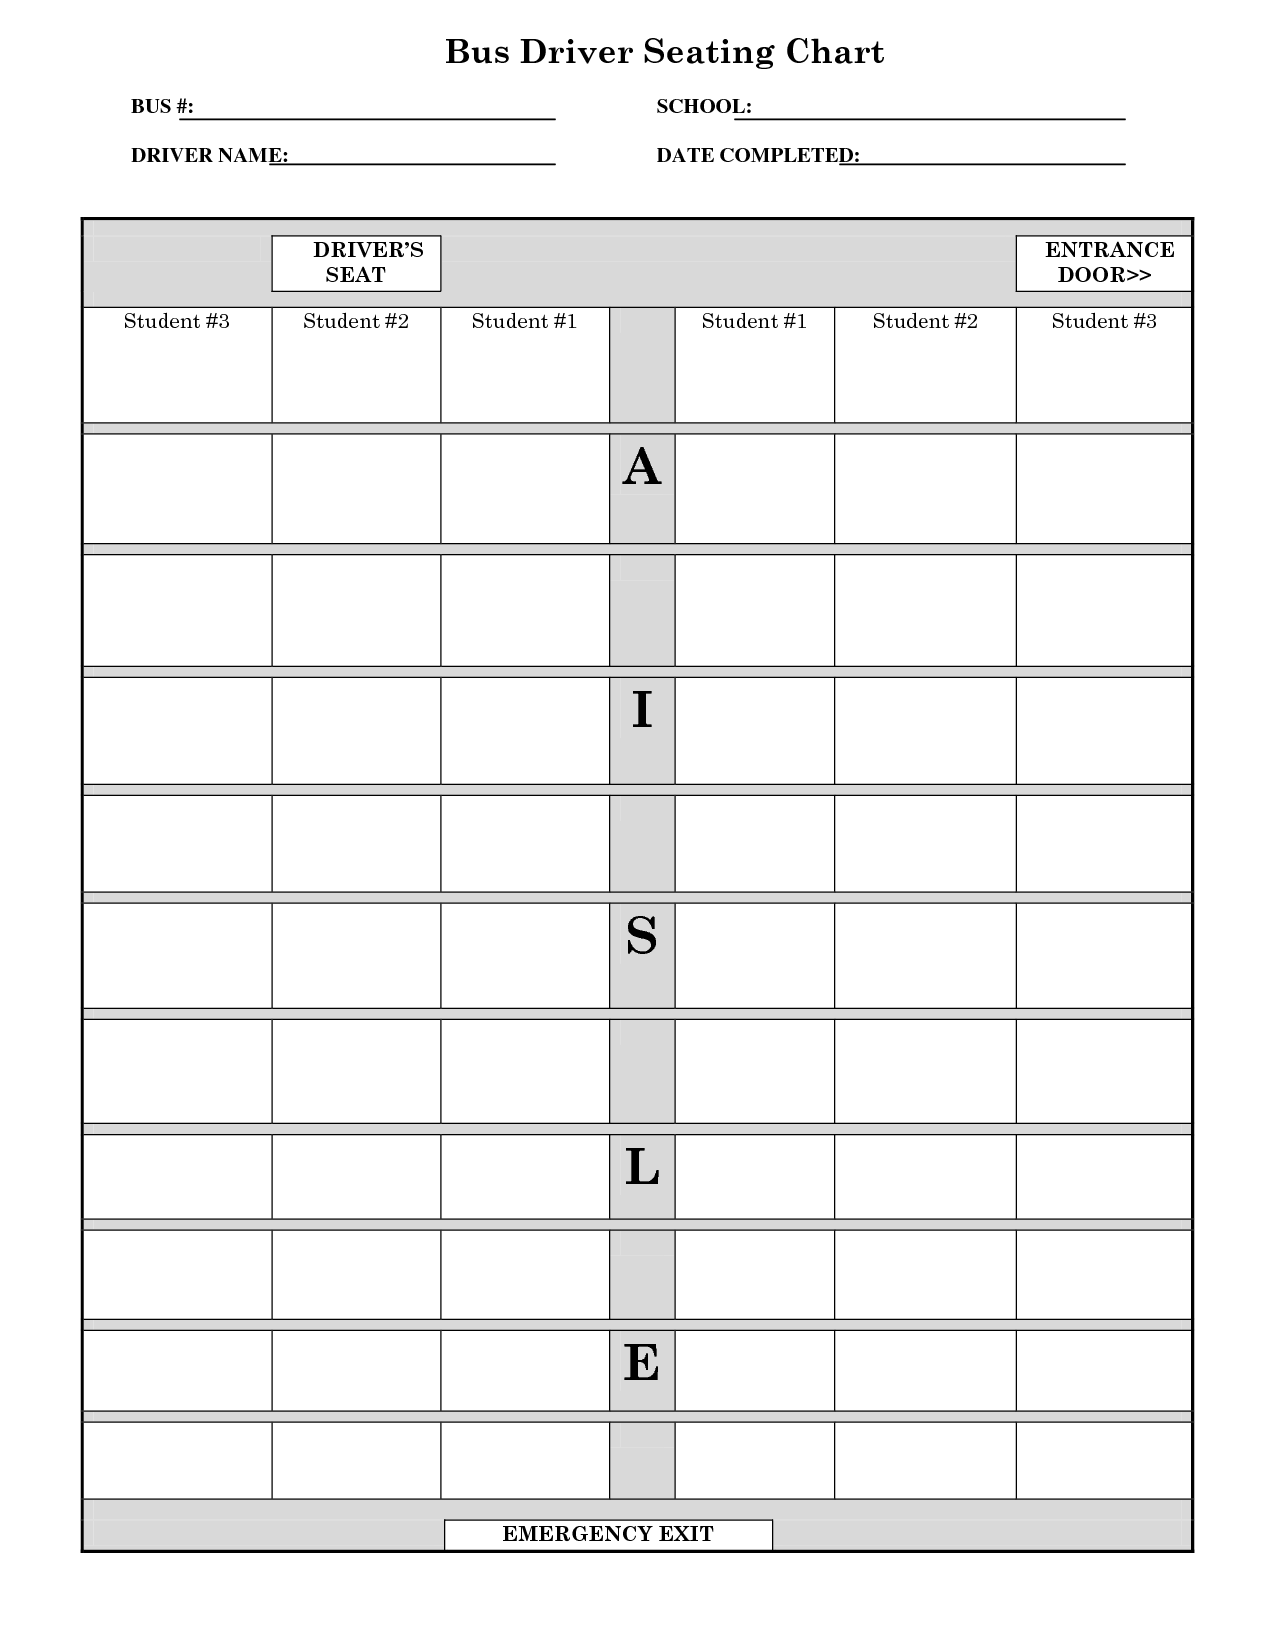 School bus seating chart template also ideas pinterest rh hu